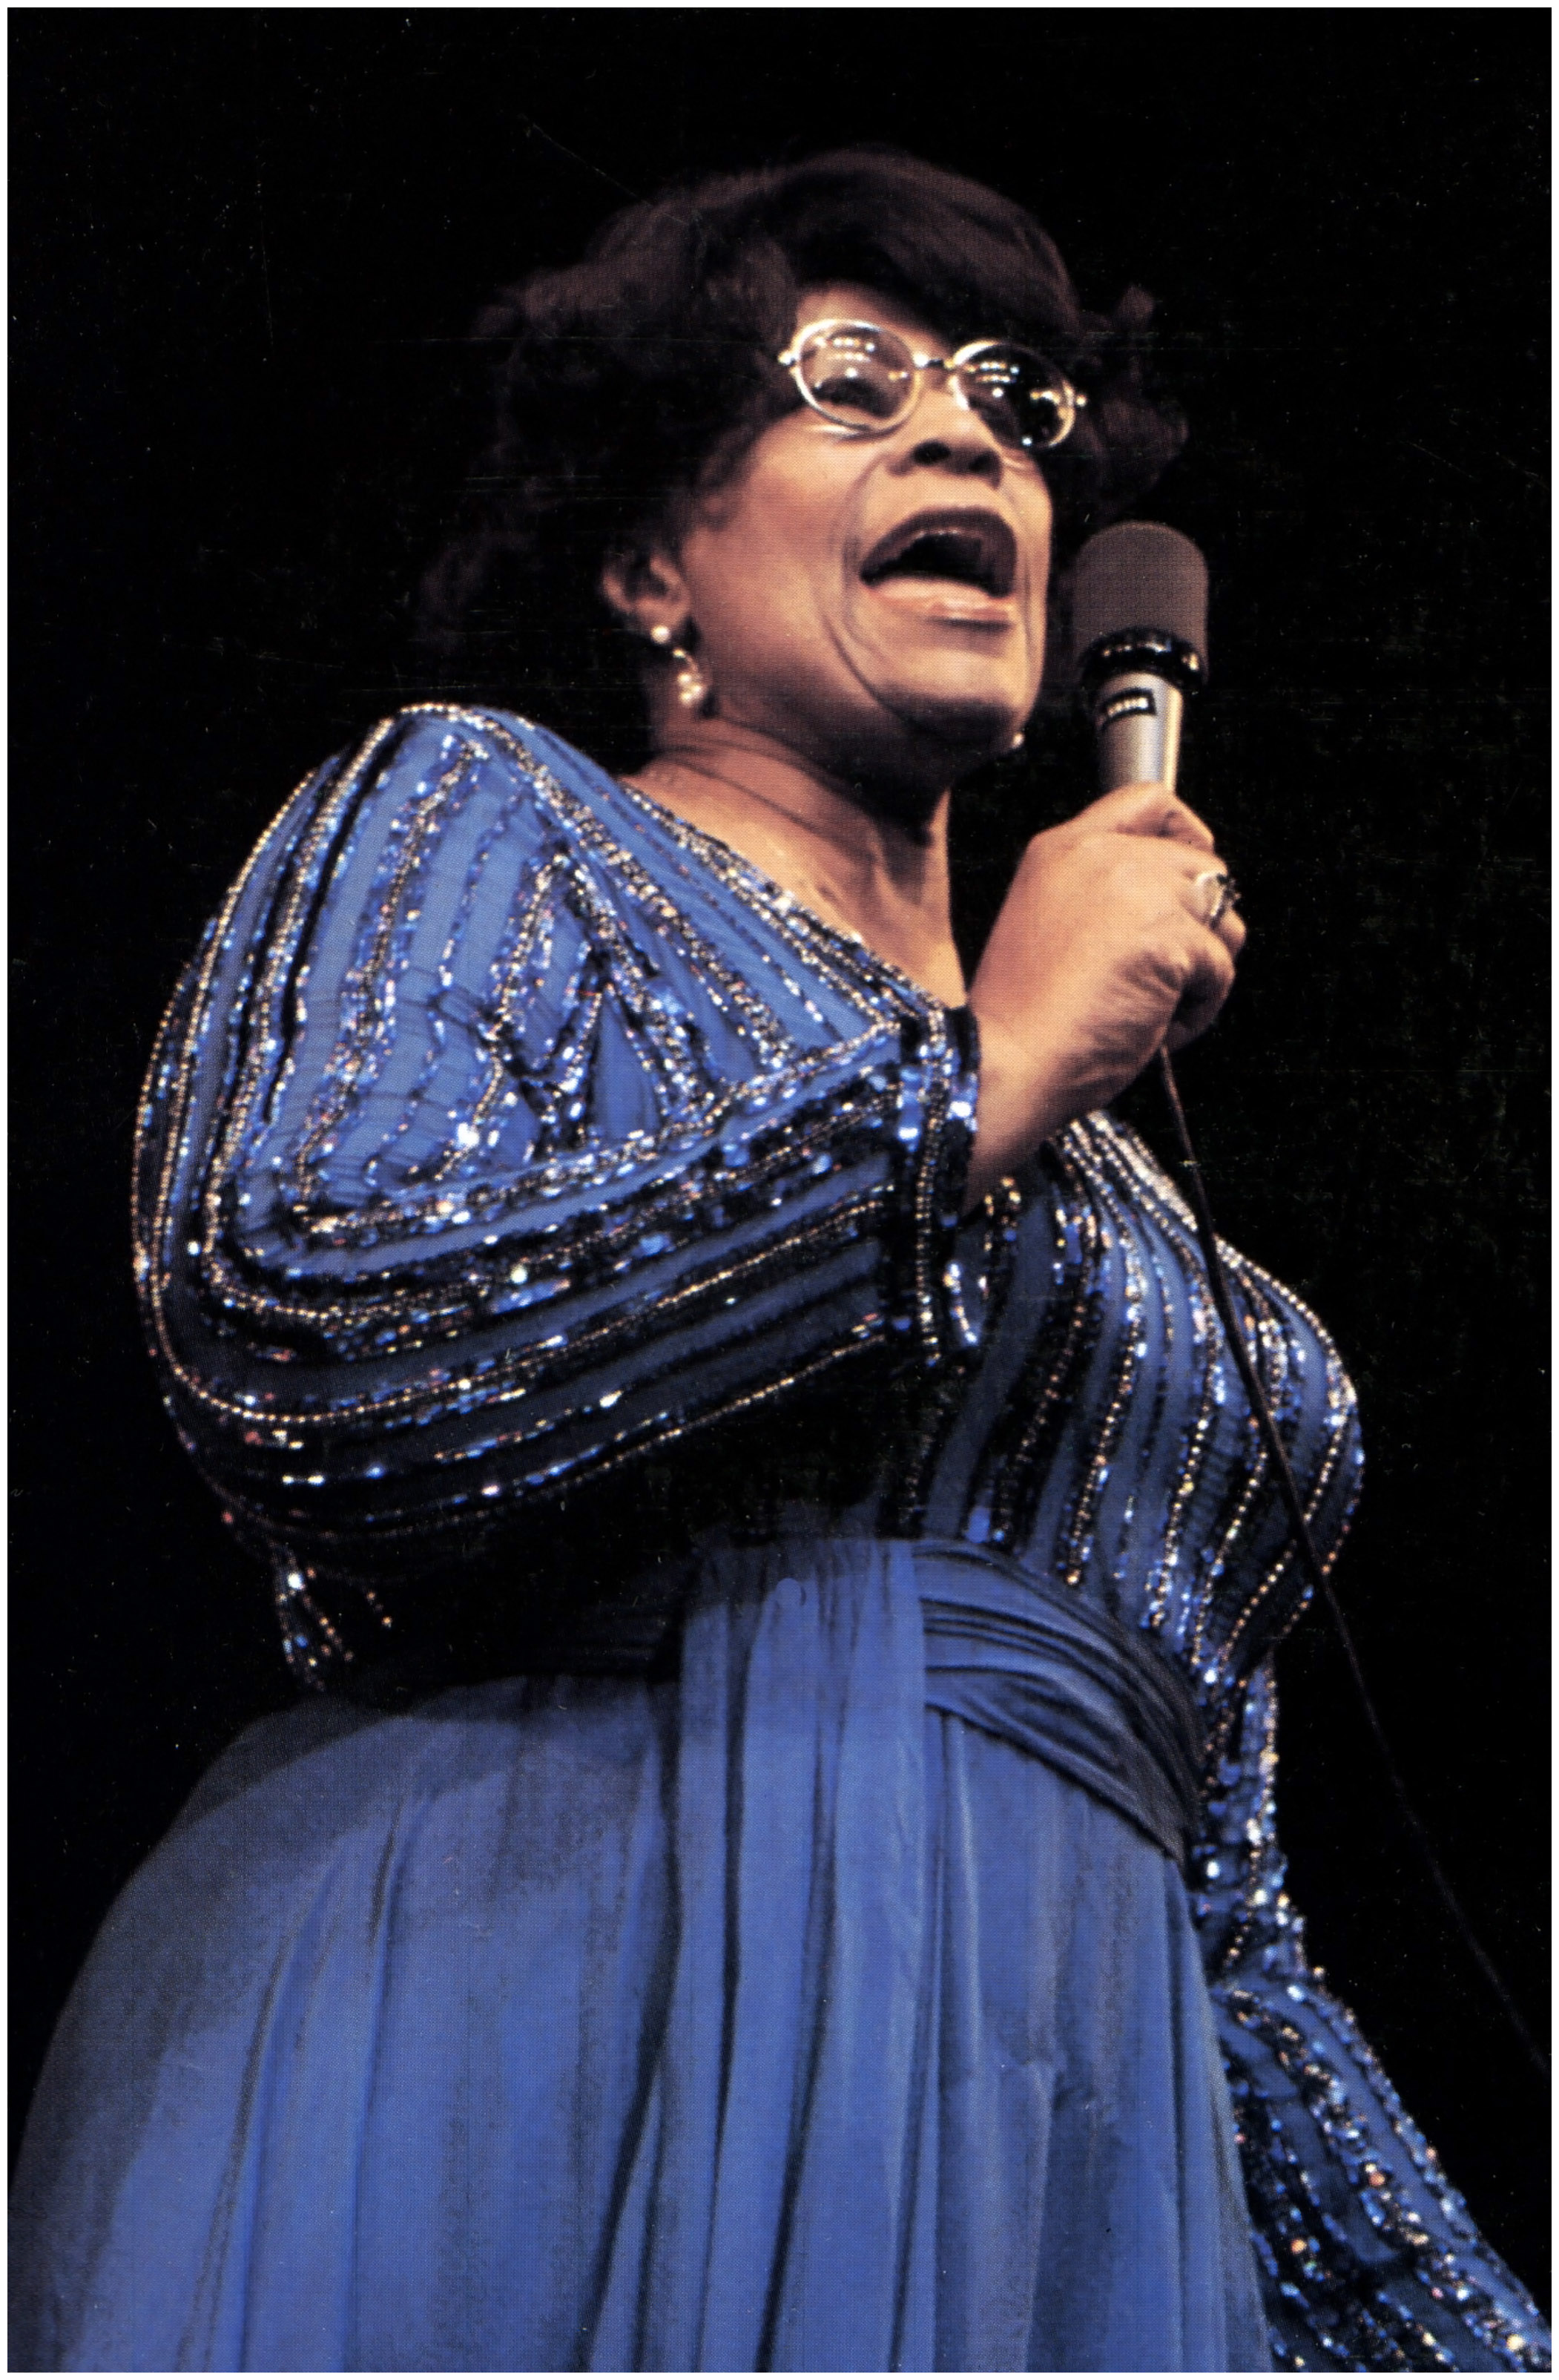 http://jazzclub-overseas.com/blog/jazz_club_overseas/australia-out-photo-of-ella-fitzgerald-performing-live-on-stage-photo-by-gab-archiveredferns-1970.jpg